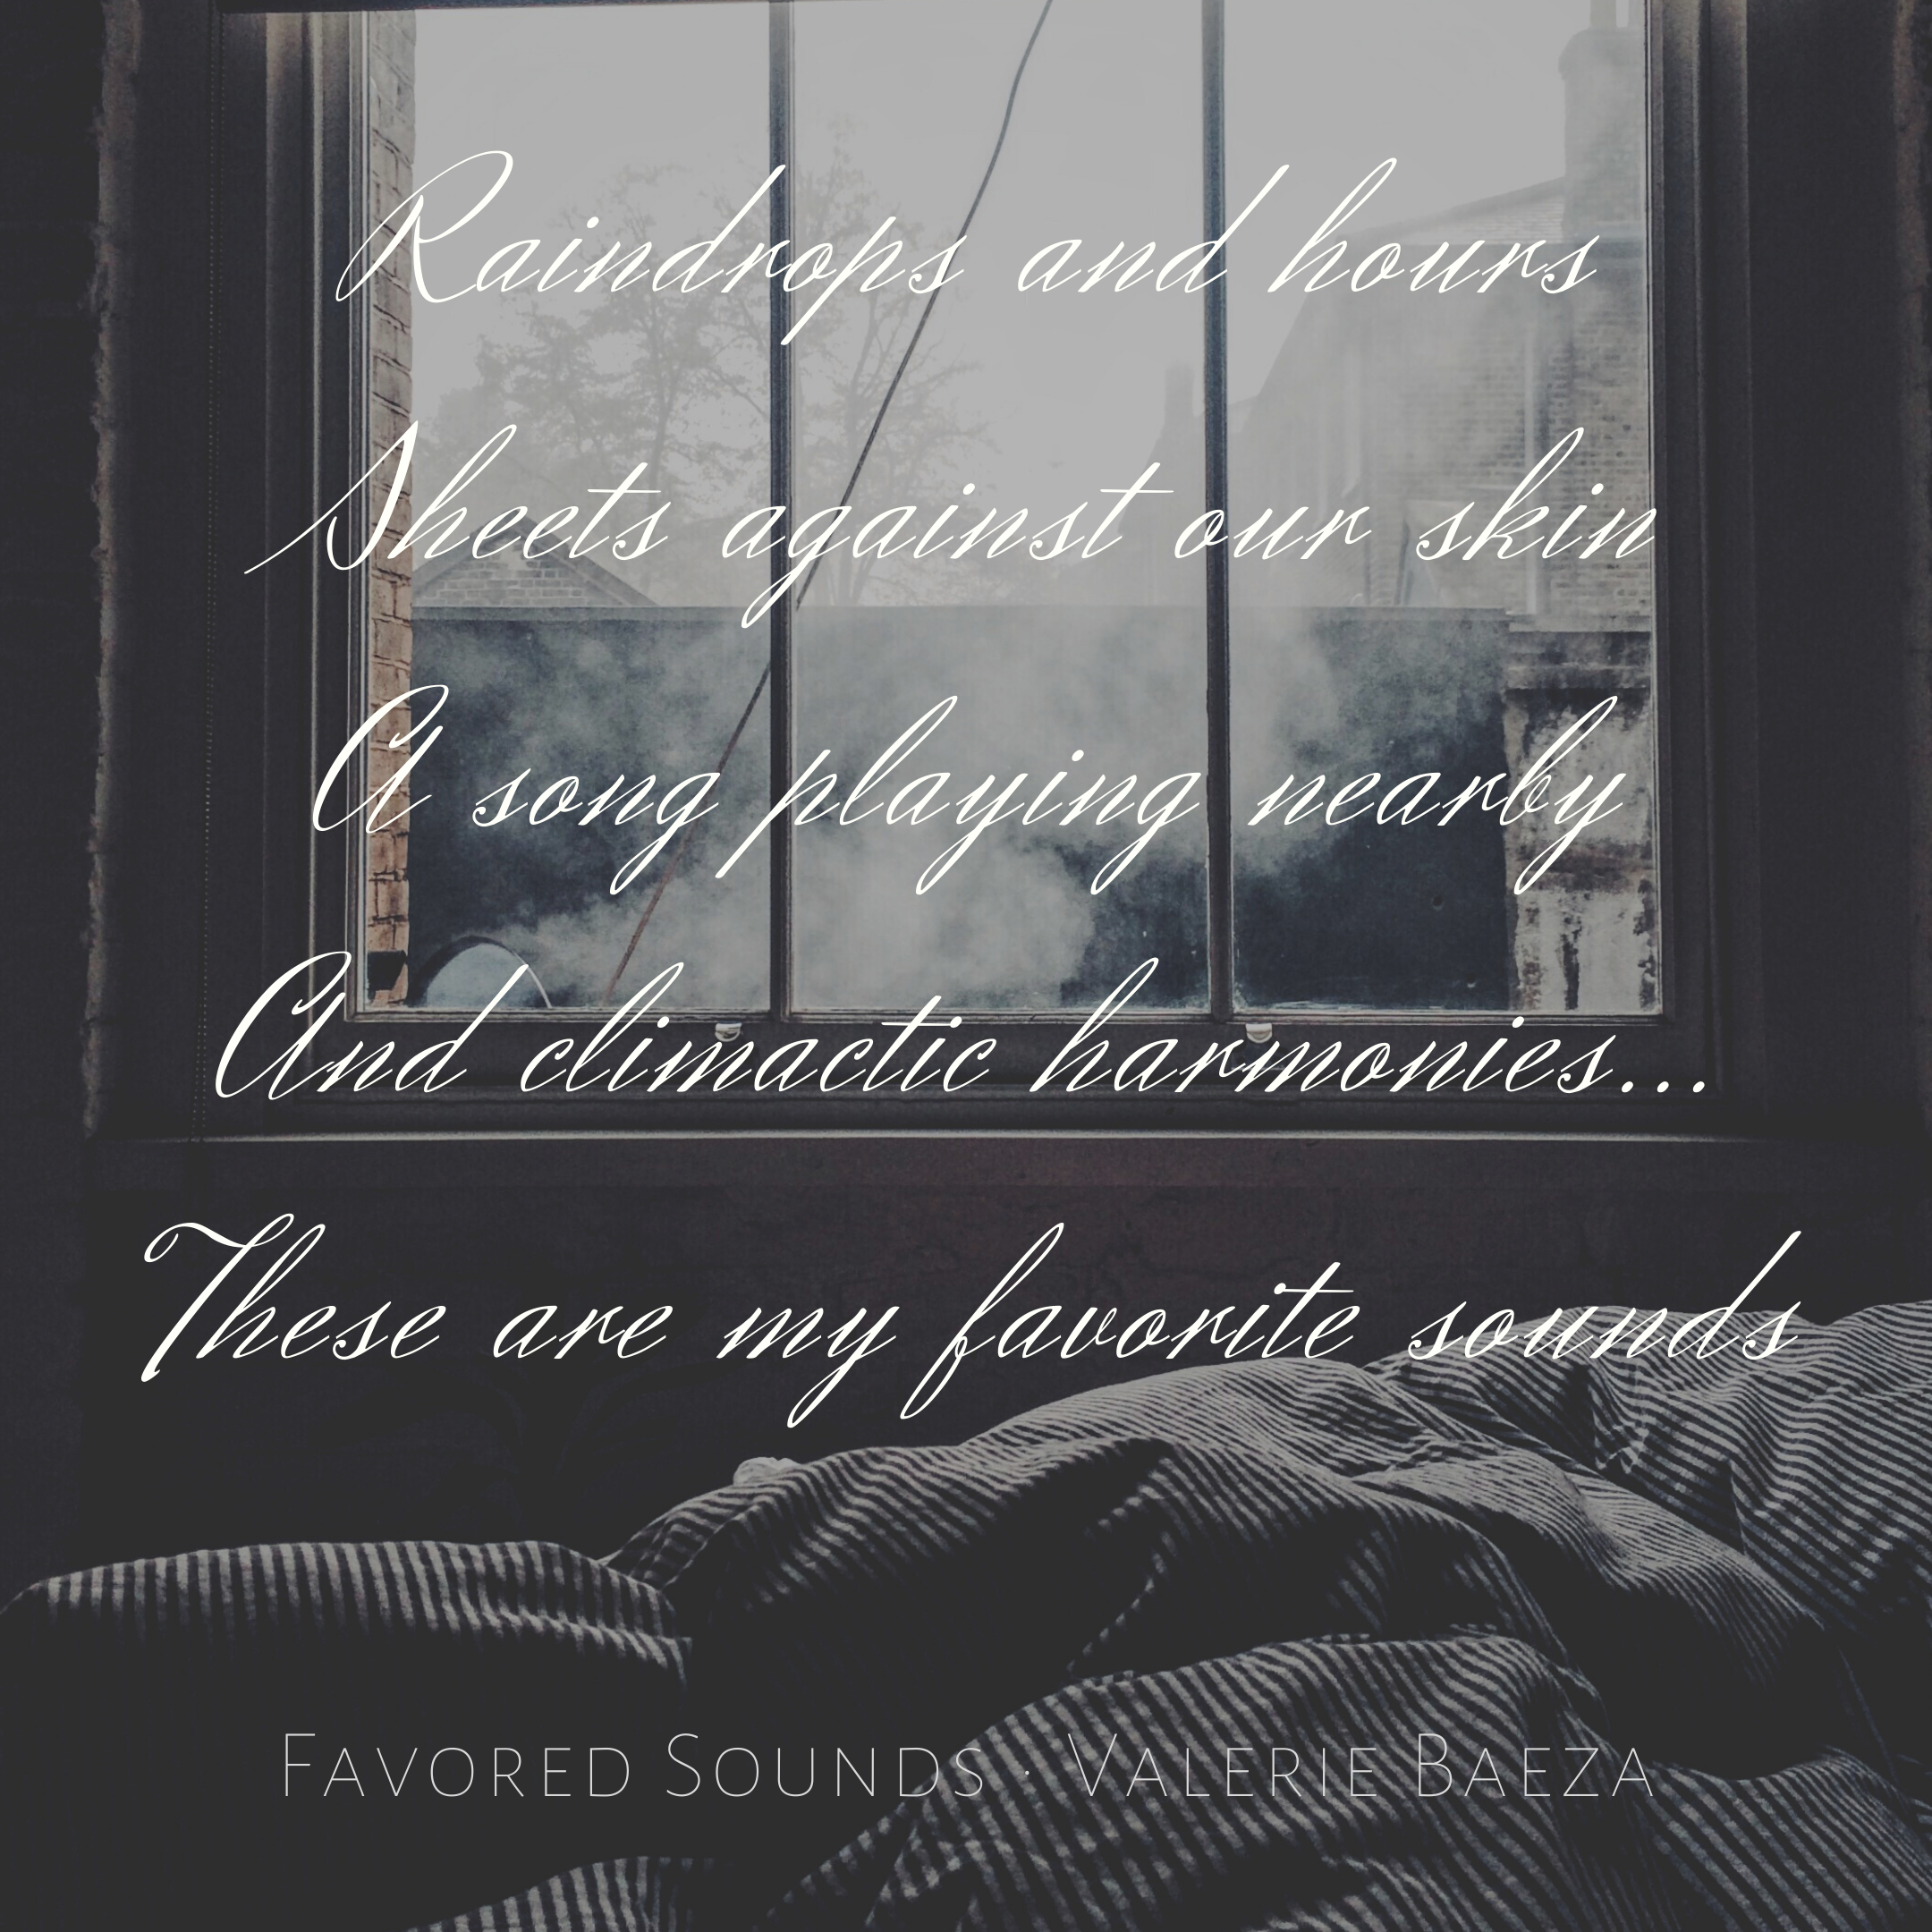 Favored Sounds